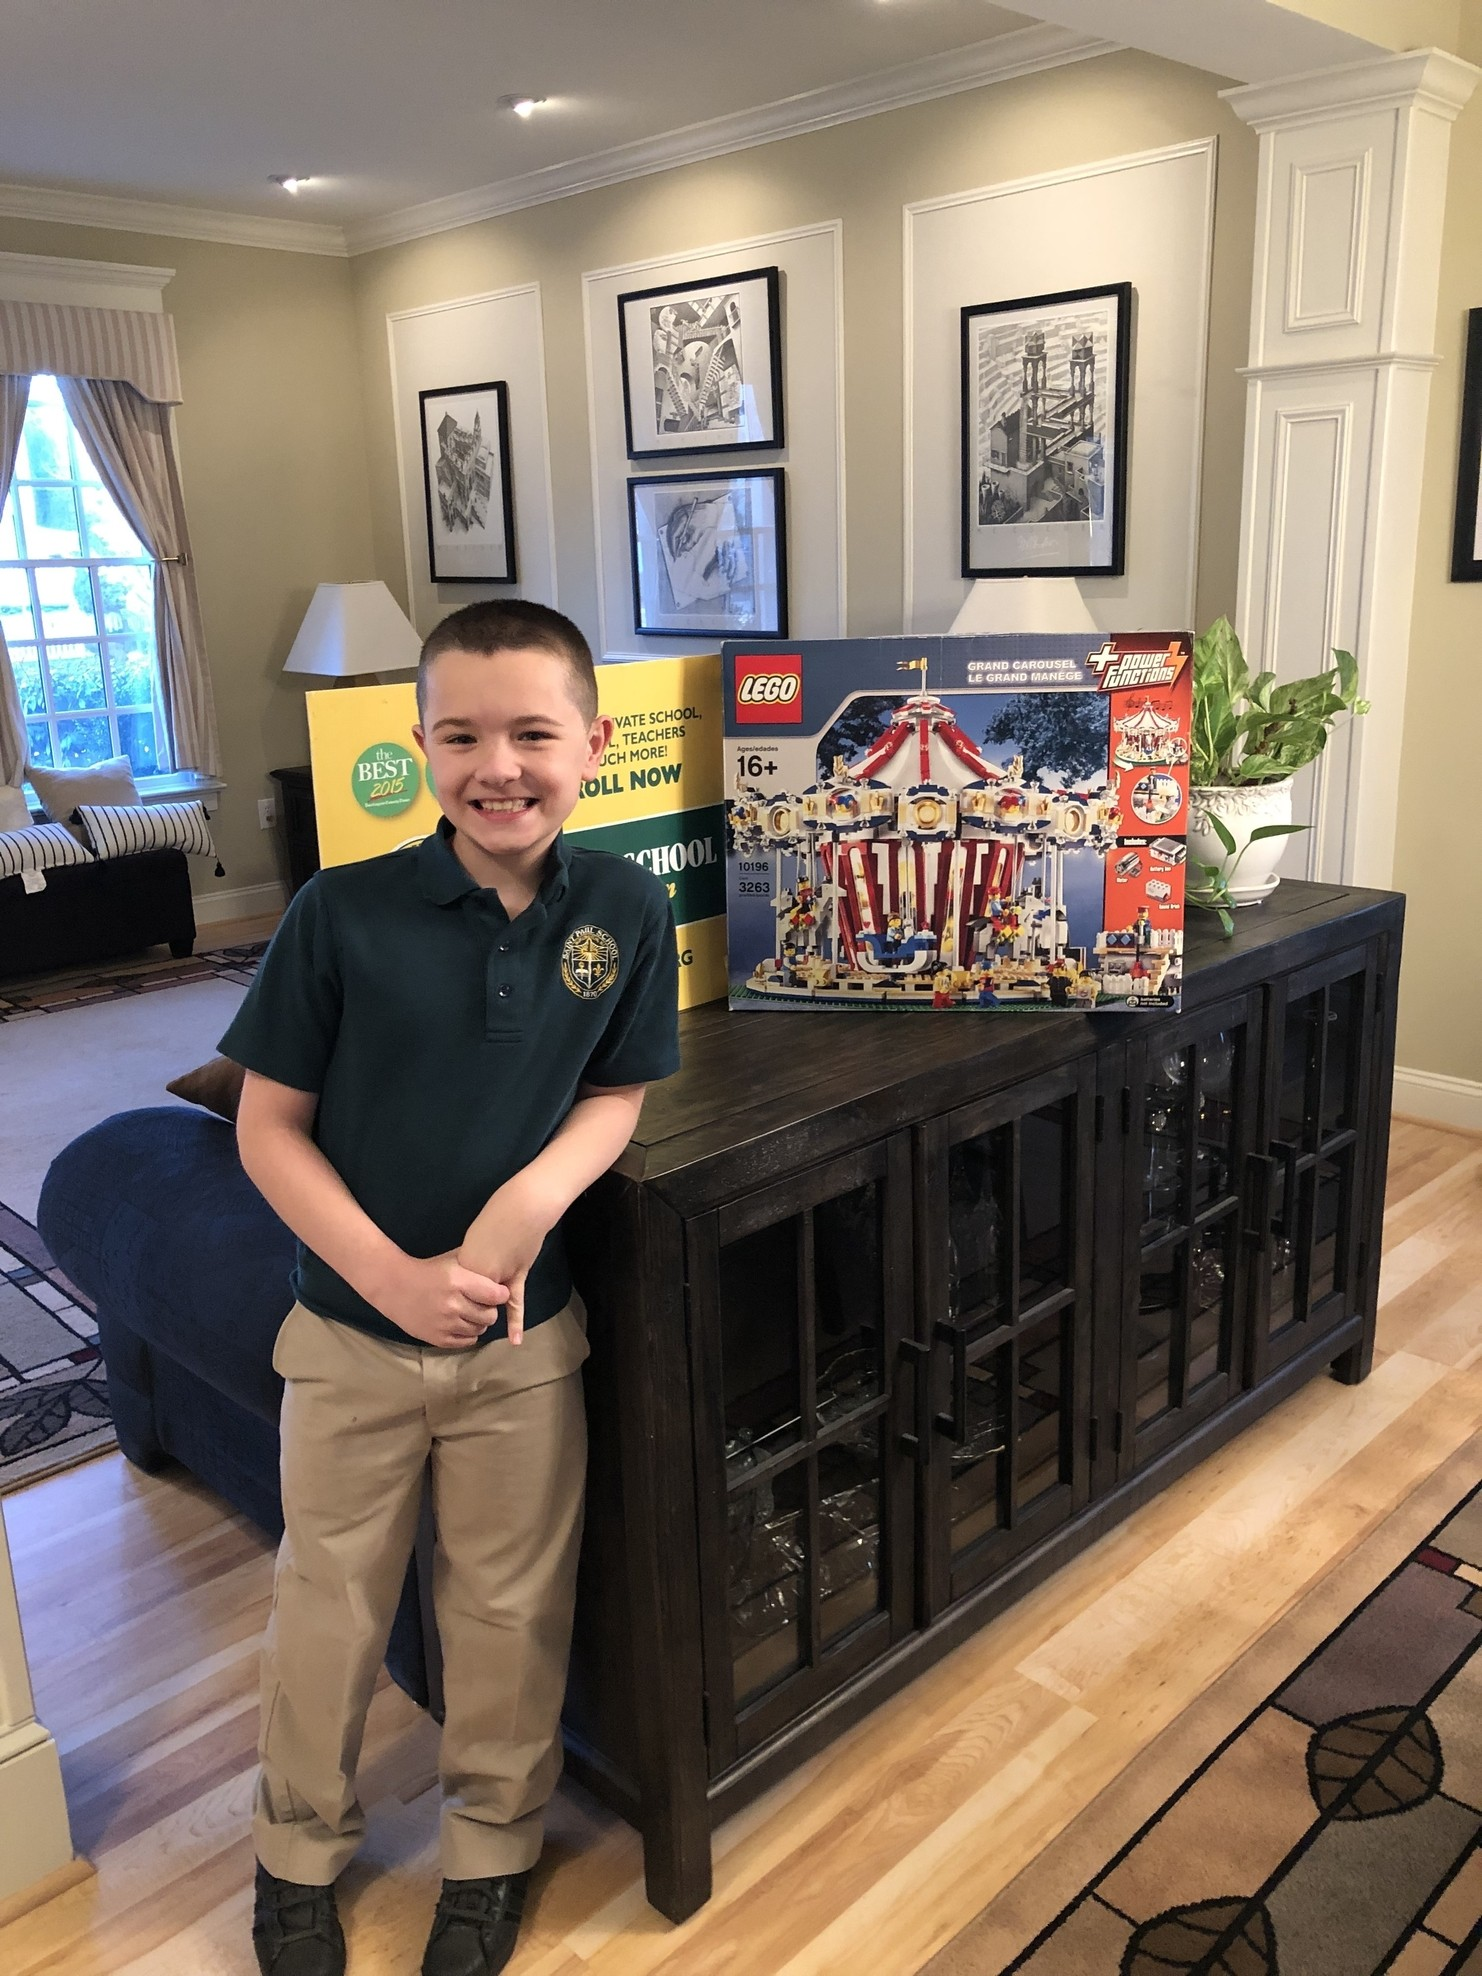 2019 BRICKPICKER LEGO Raffle to Keep St. Paul School Strong!